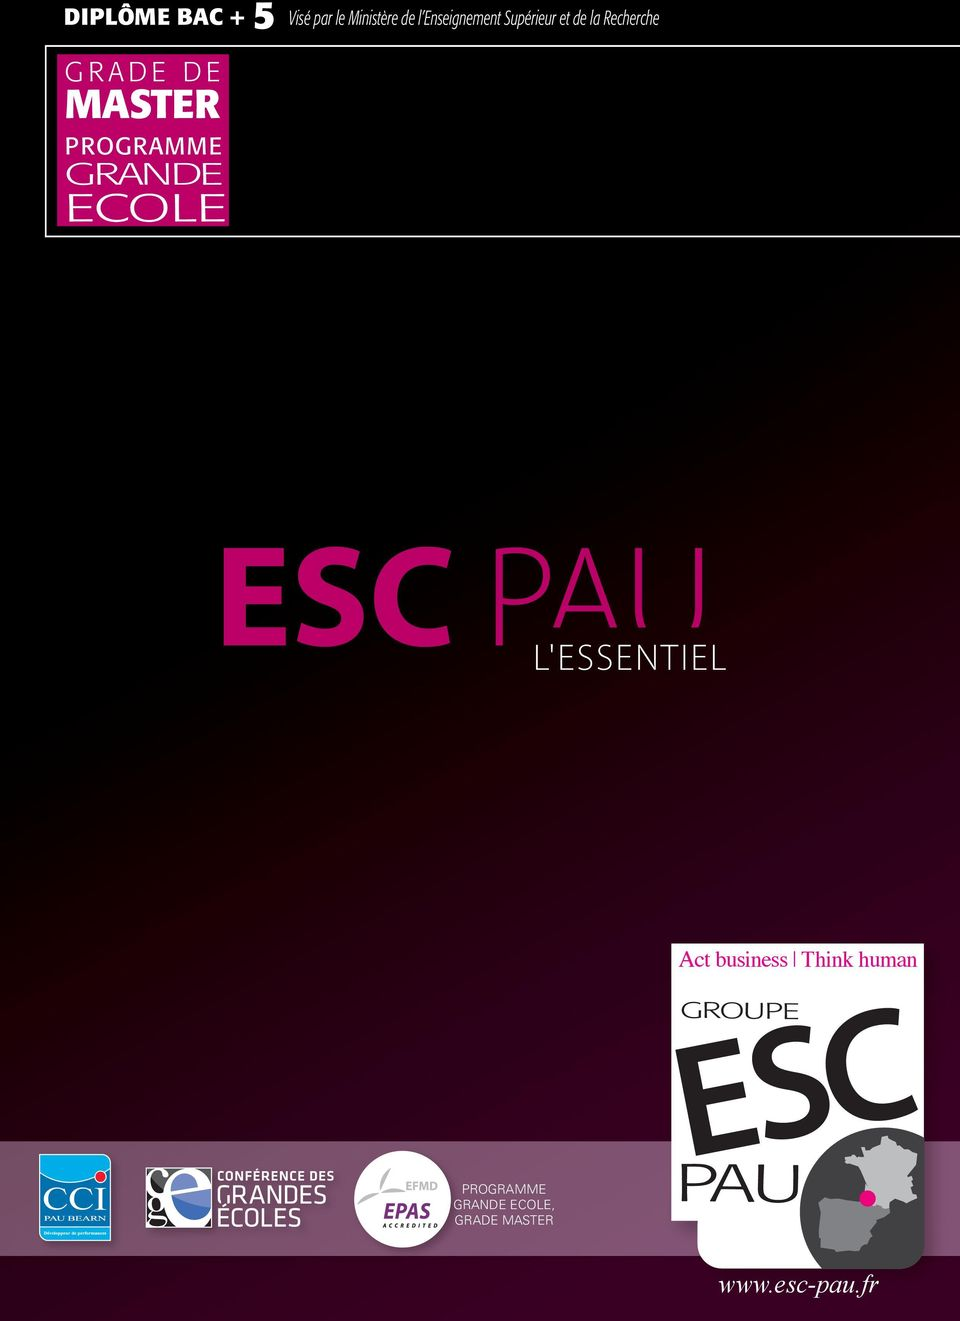 PROGRAMME GRANDE ECOLE L'ESSENTIEL Act business ǀ Think